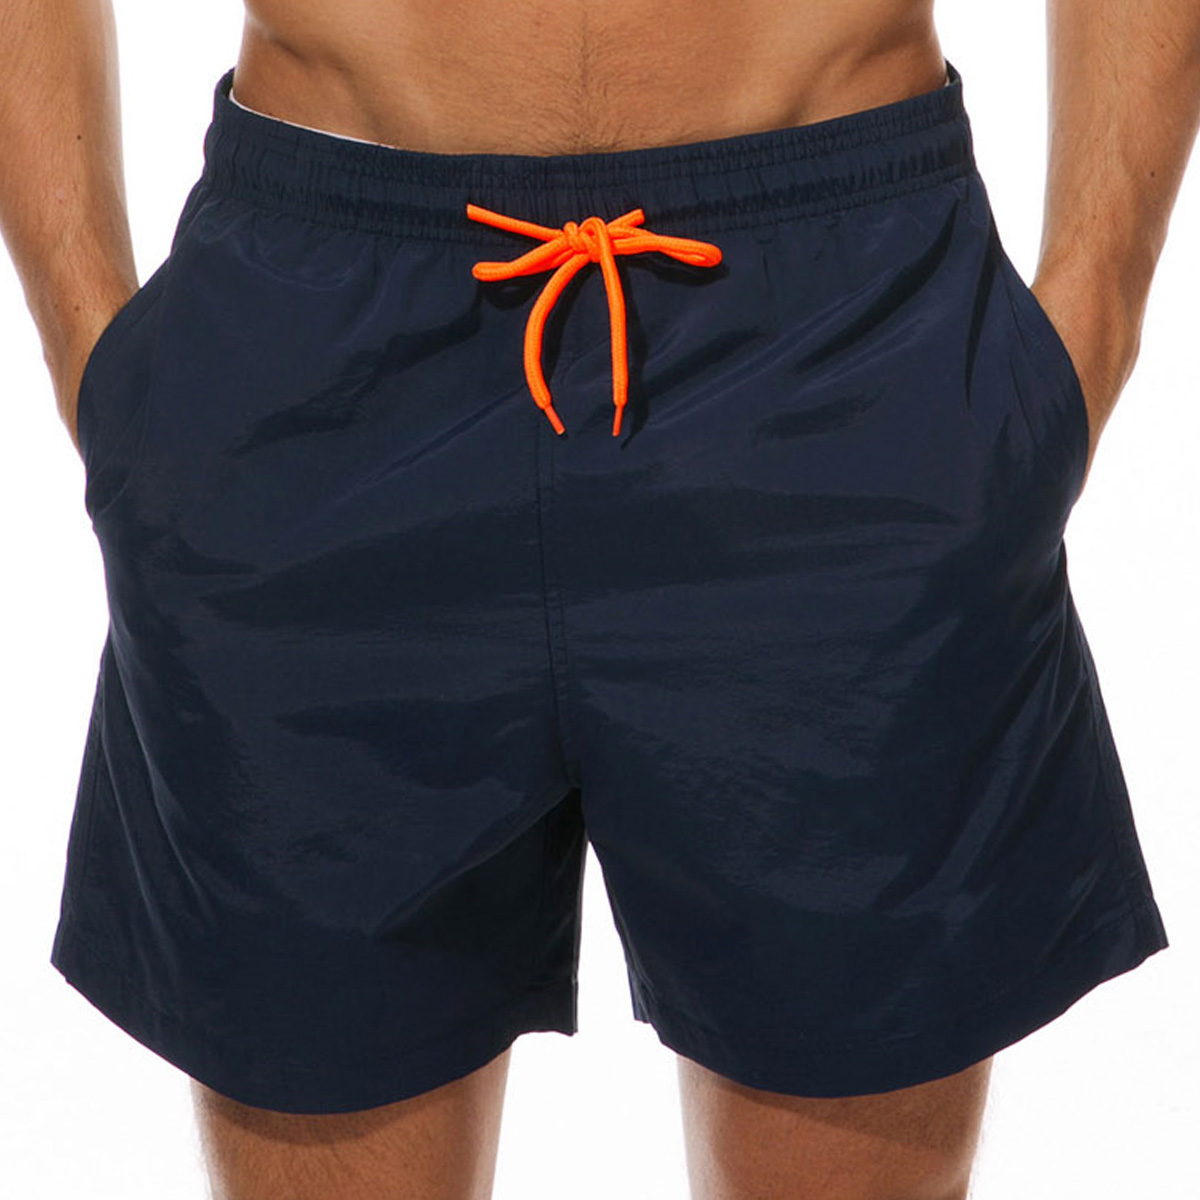 Mesh Liner Quick Dry Bermuda Drawstring Waist Men's Swim Trunks